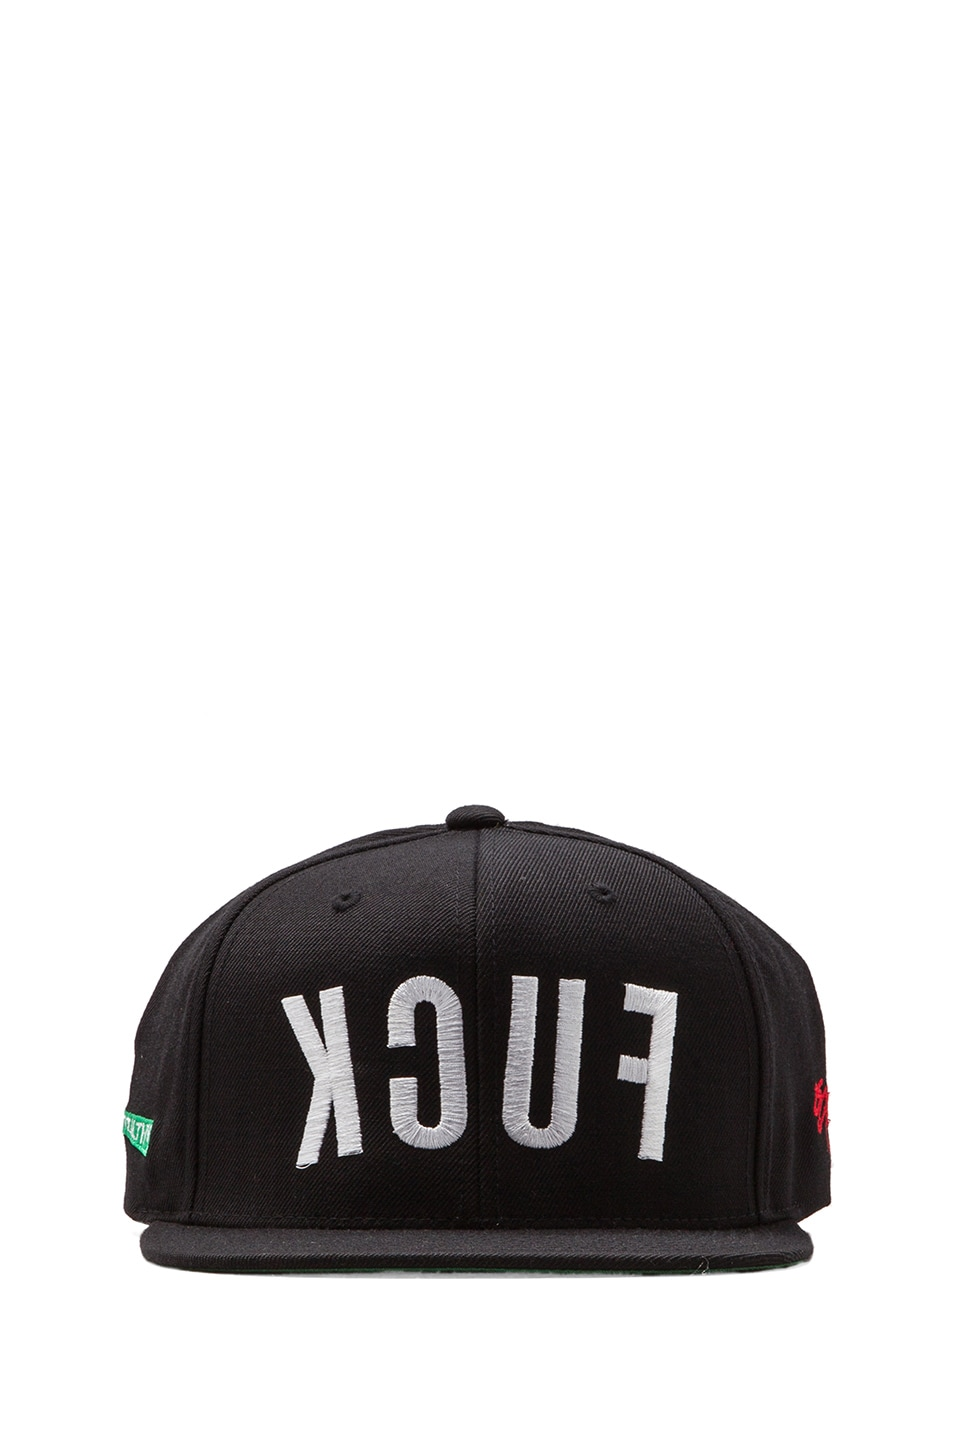 SSUR Mighty Fuck Snapback in Black/White